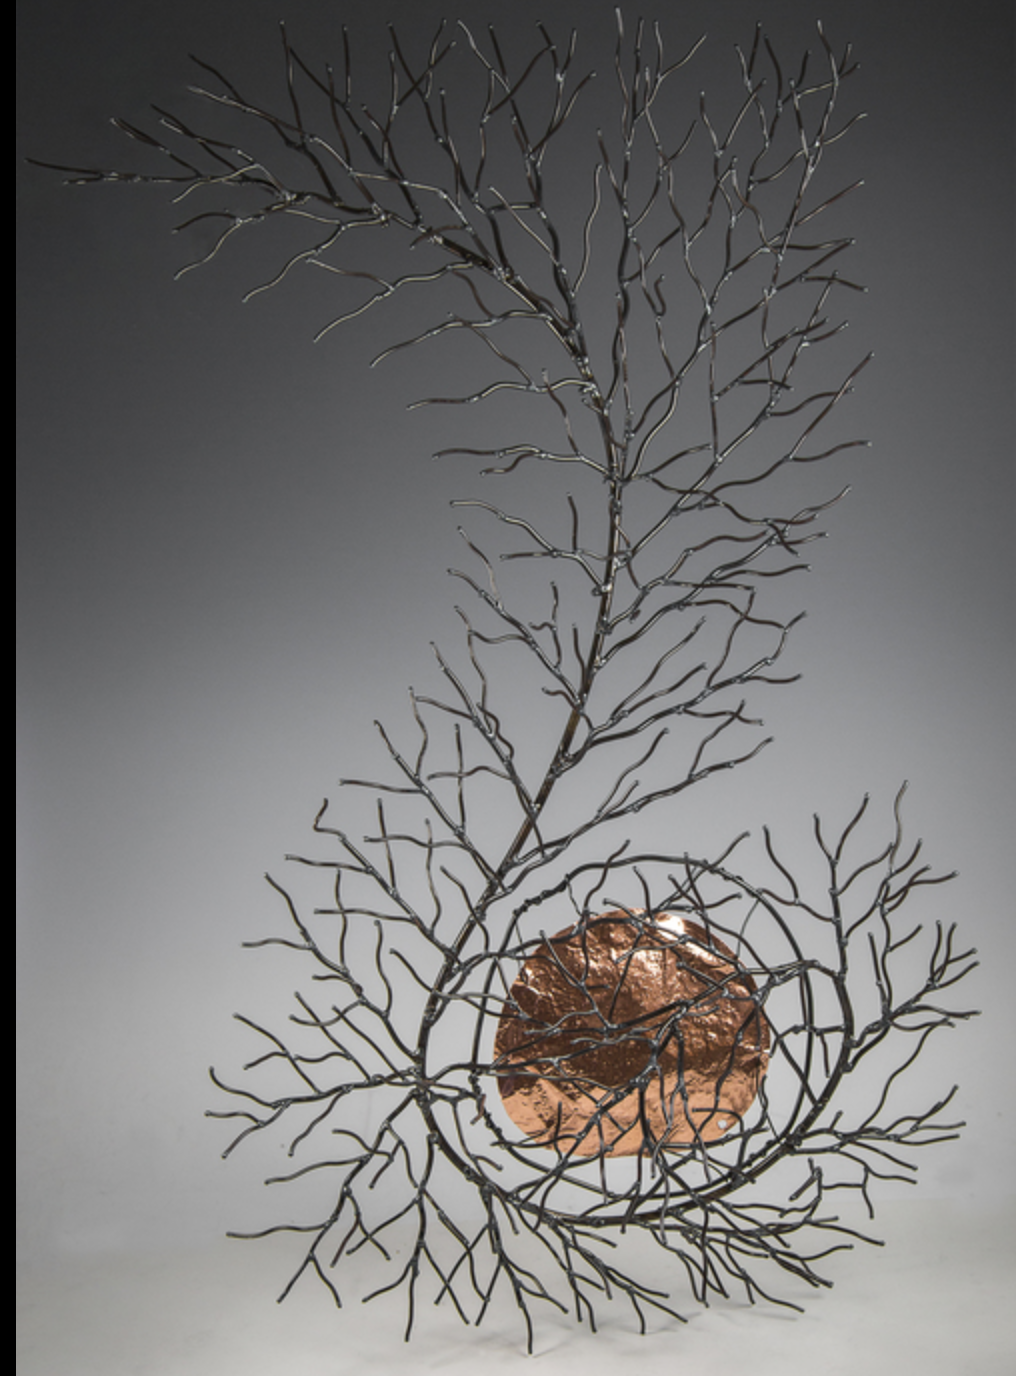 Chris Swedzinski - Using steel, copper, glass and stone I weld, forge, grind and polish to bring the beauty of nature into sculpture. My mission in art is to use as much recycled material as possibe and make it new.